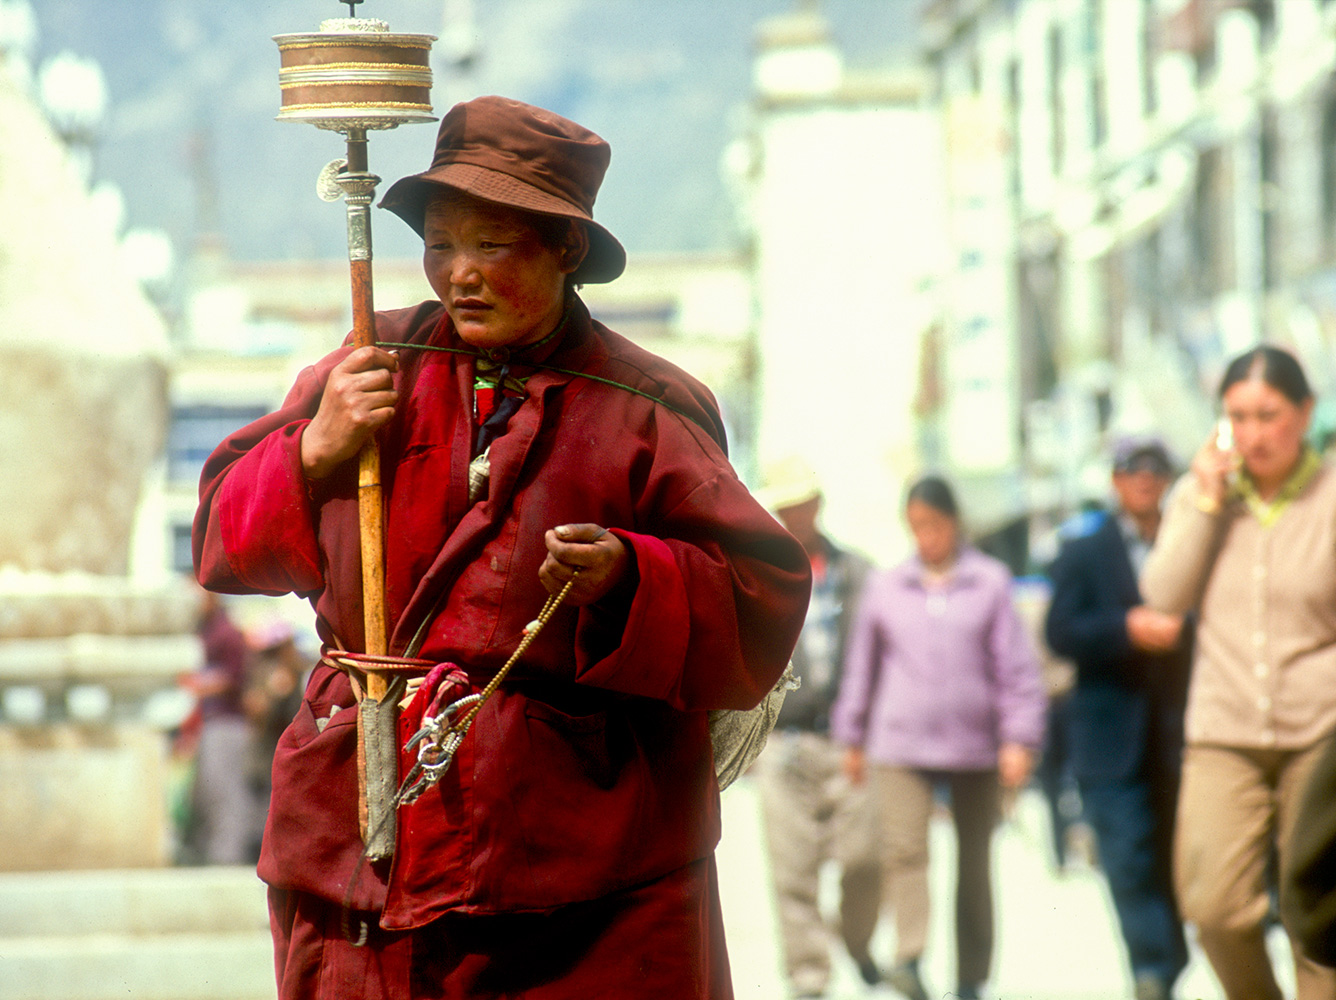 All day on this holy route, a constand stream of shuffling, chanting people circle the Jokhang. This is life as meditation....Nikon F5, 180mm, Fuji Velvia 100